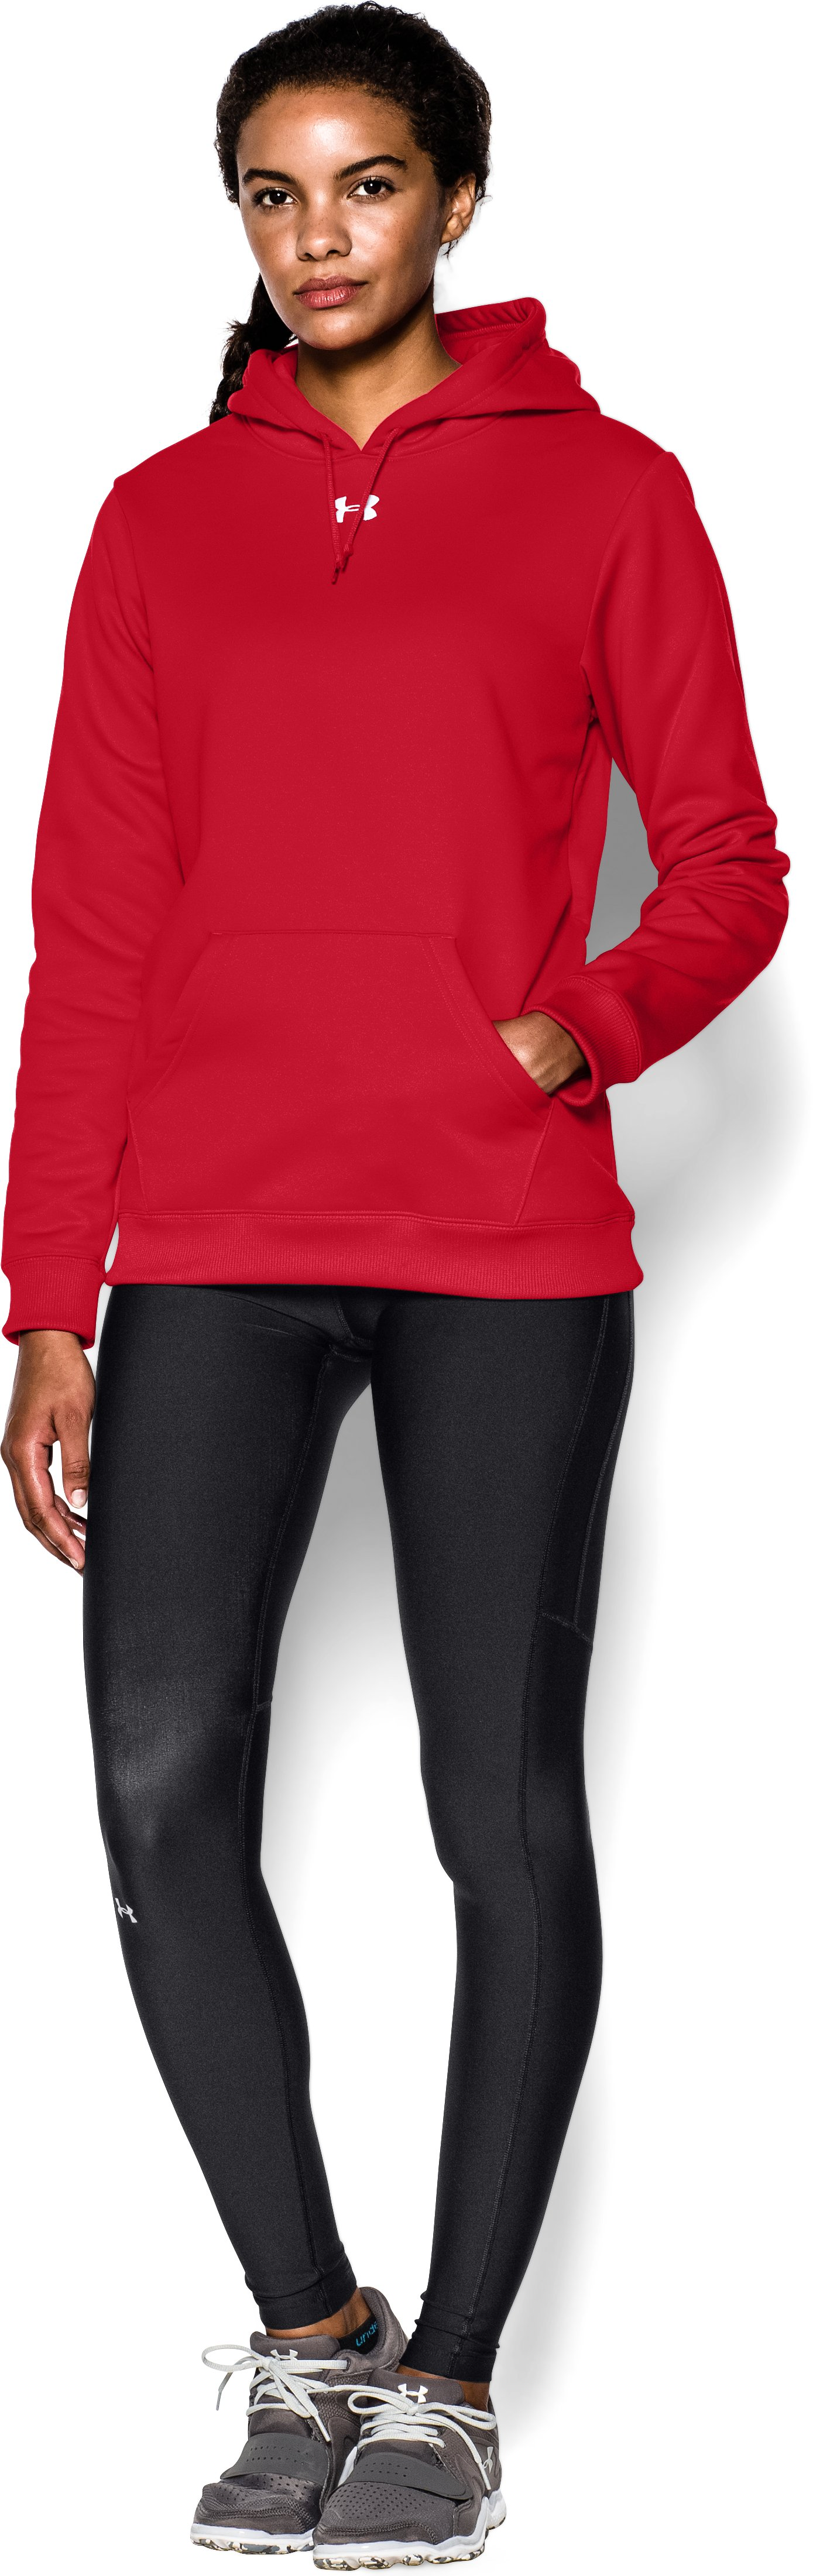 Women's Armour® Fleece Team Hoodie, Red, Front